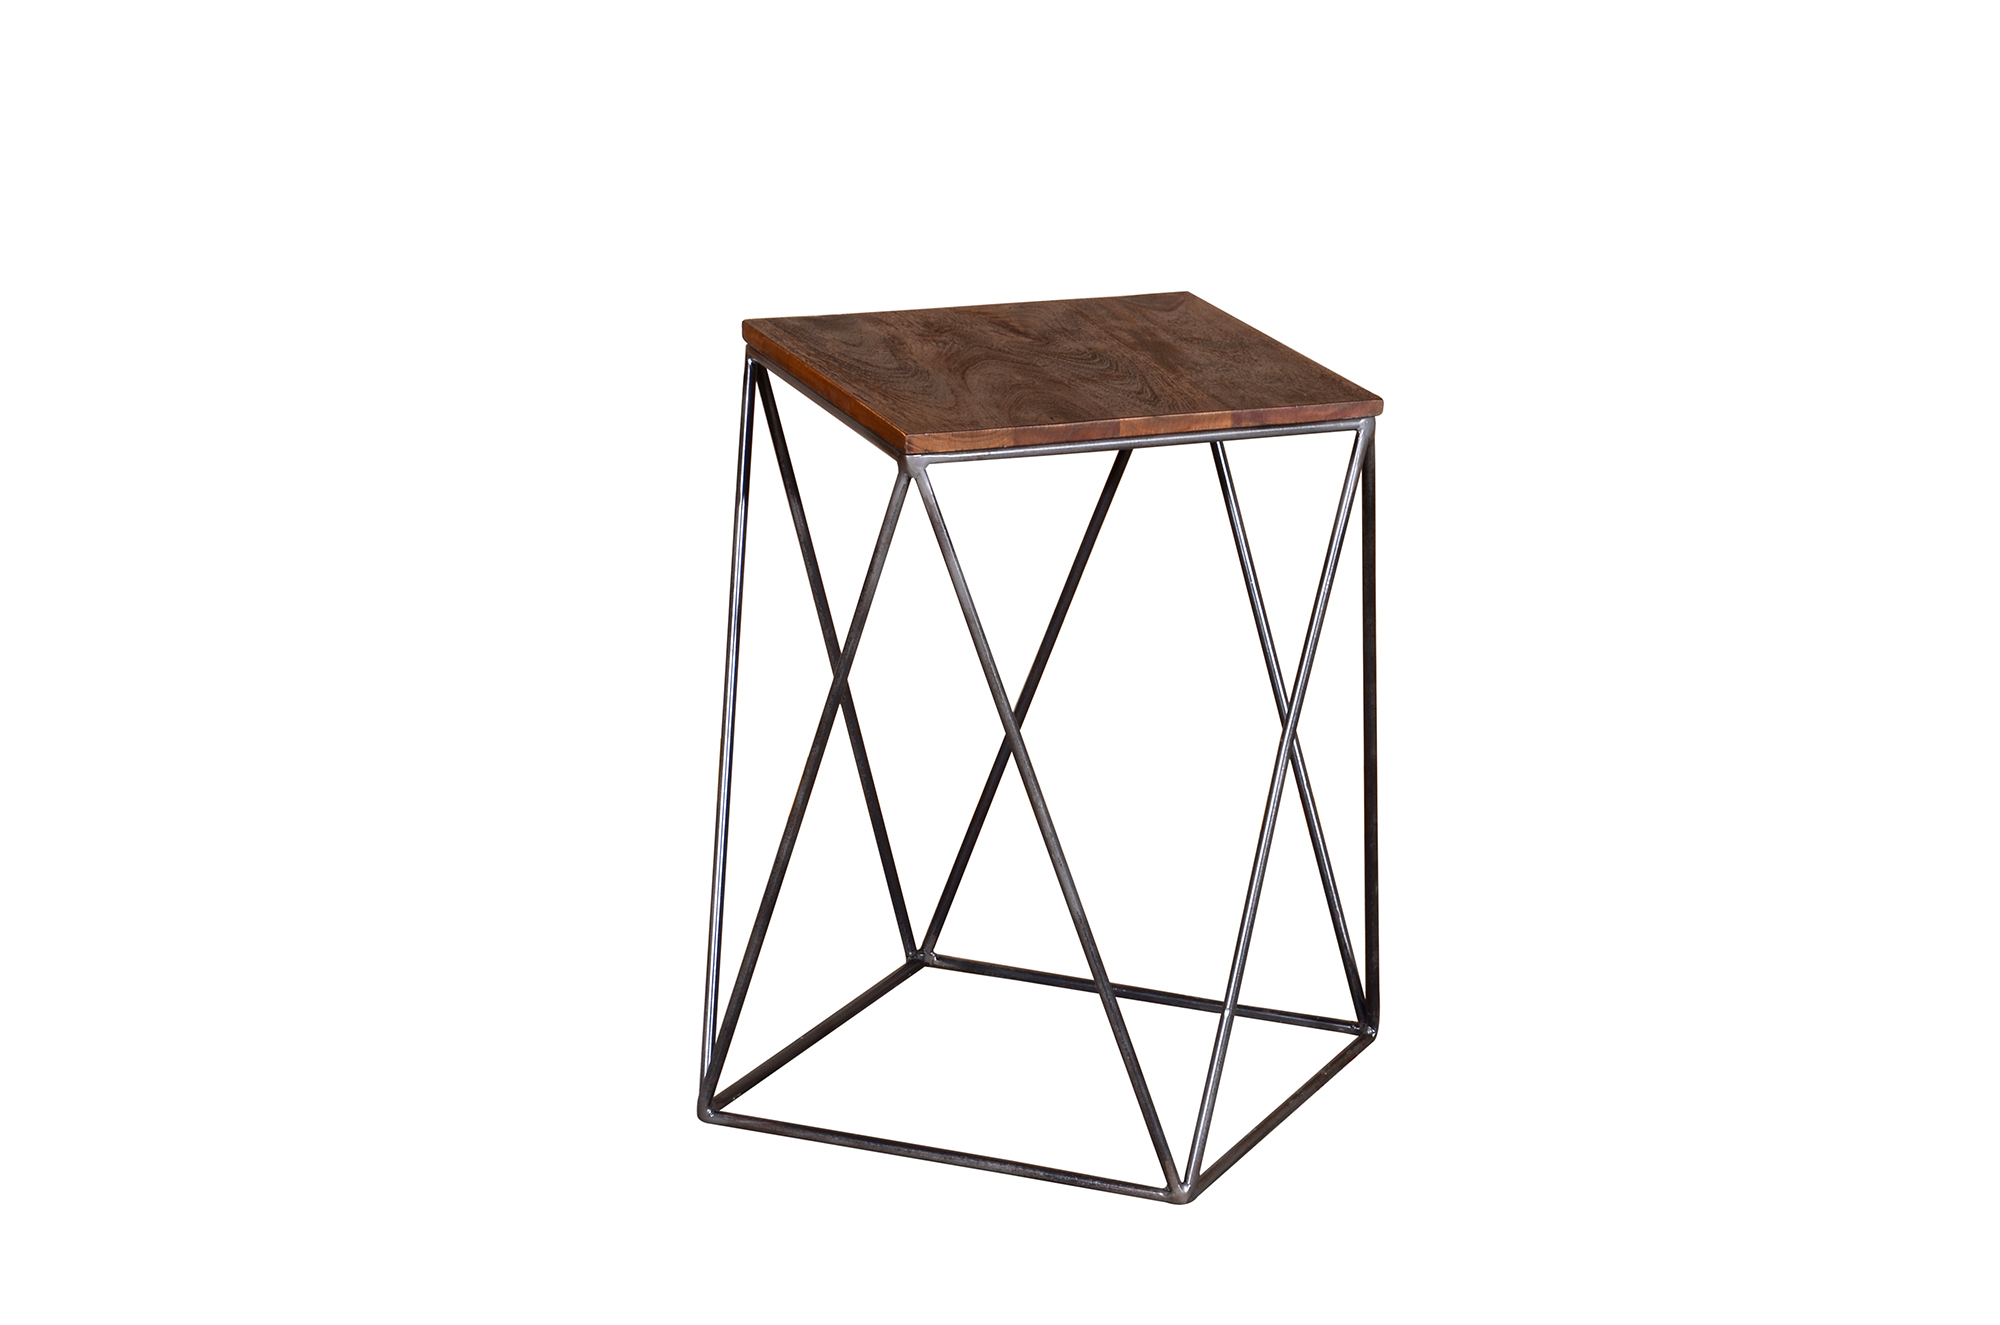 https://www.firstfurniture.co.uk/pub/media/catalog/product/1/5/1505301577_Fes-017_20-_20Fes_20Drink_20Table(36X36X56CMS)(Wdn_20top_20&_20Iron_20Leg).JPG